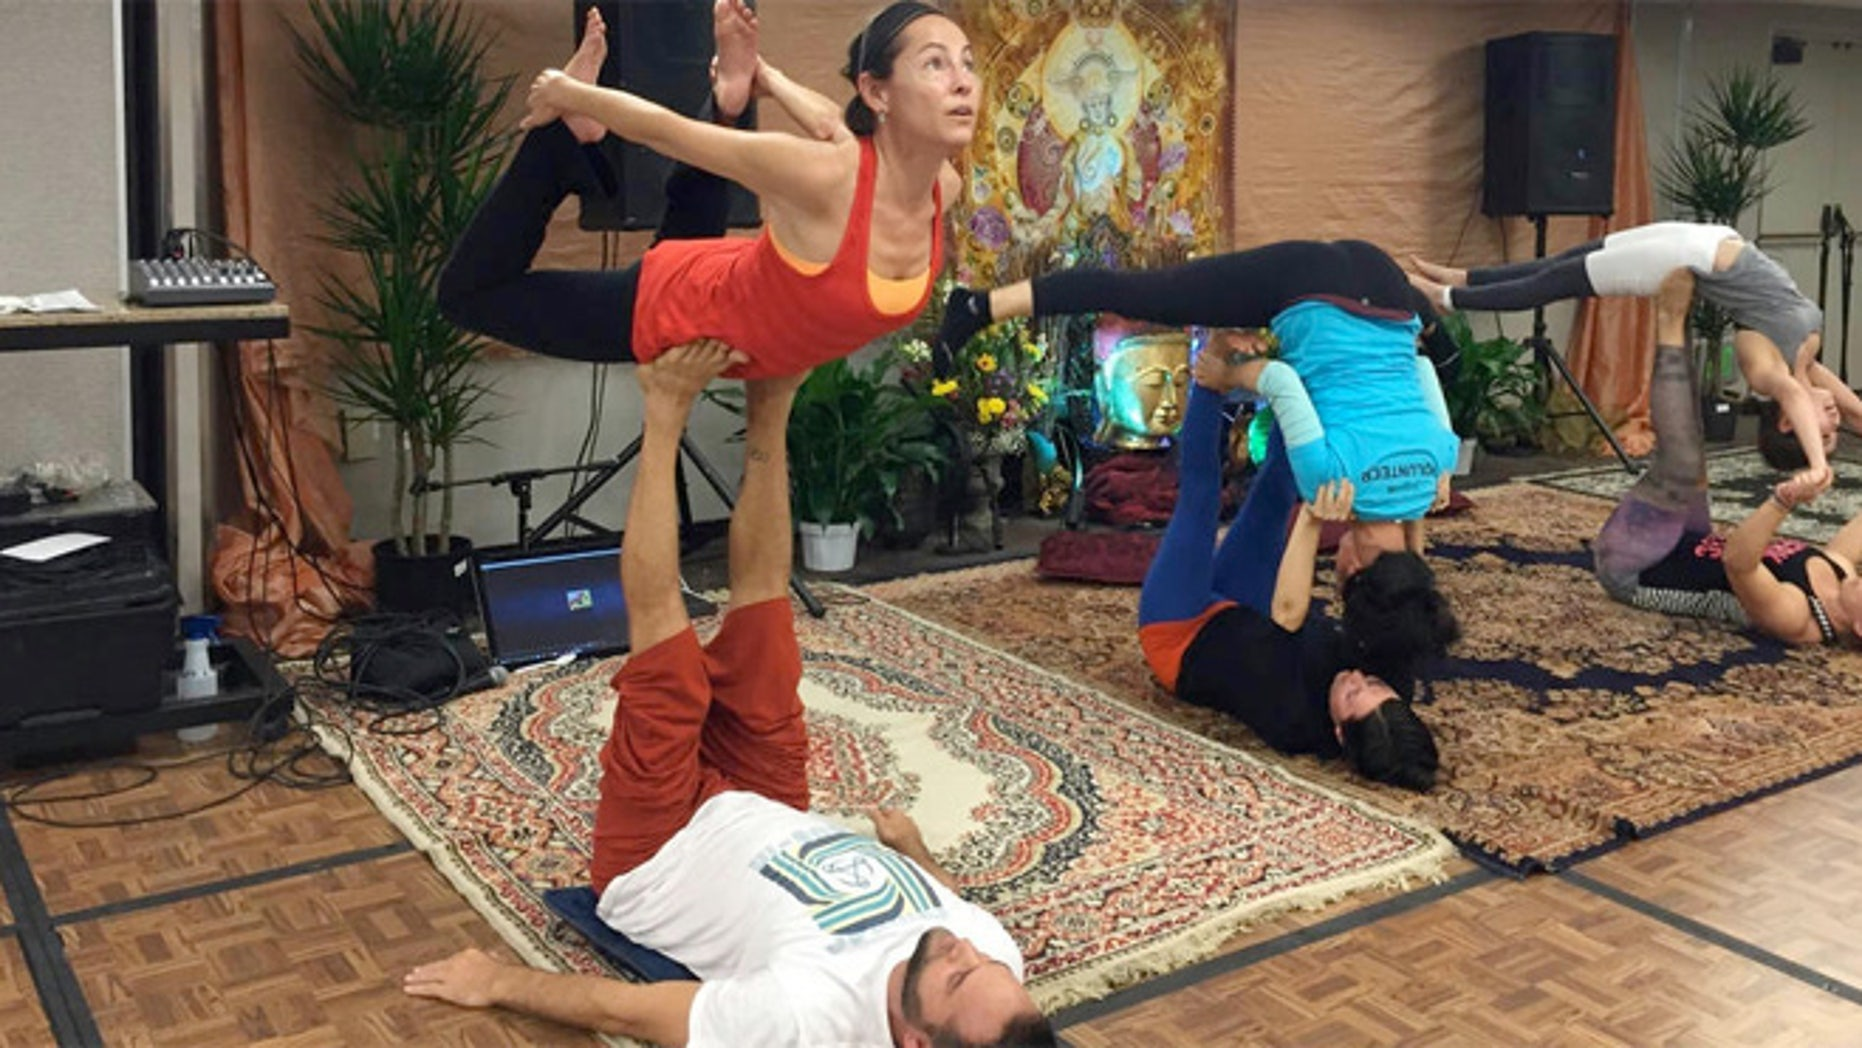 Trust is a key component in AcroYoga, as with this bow pose which had me high off the ground.